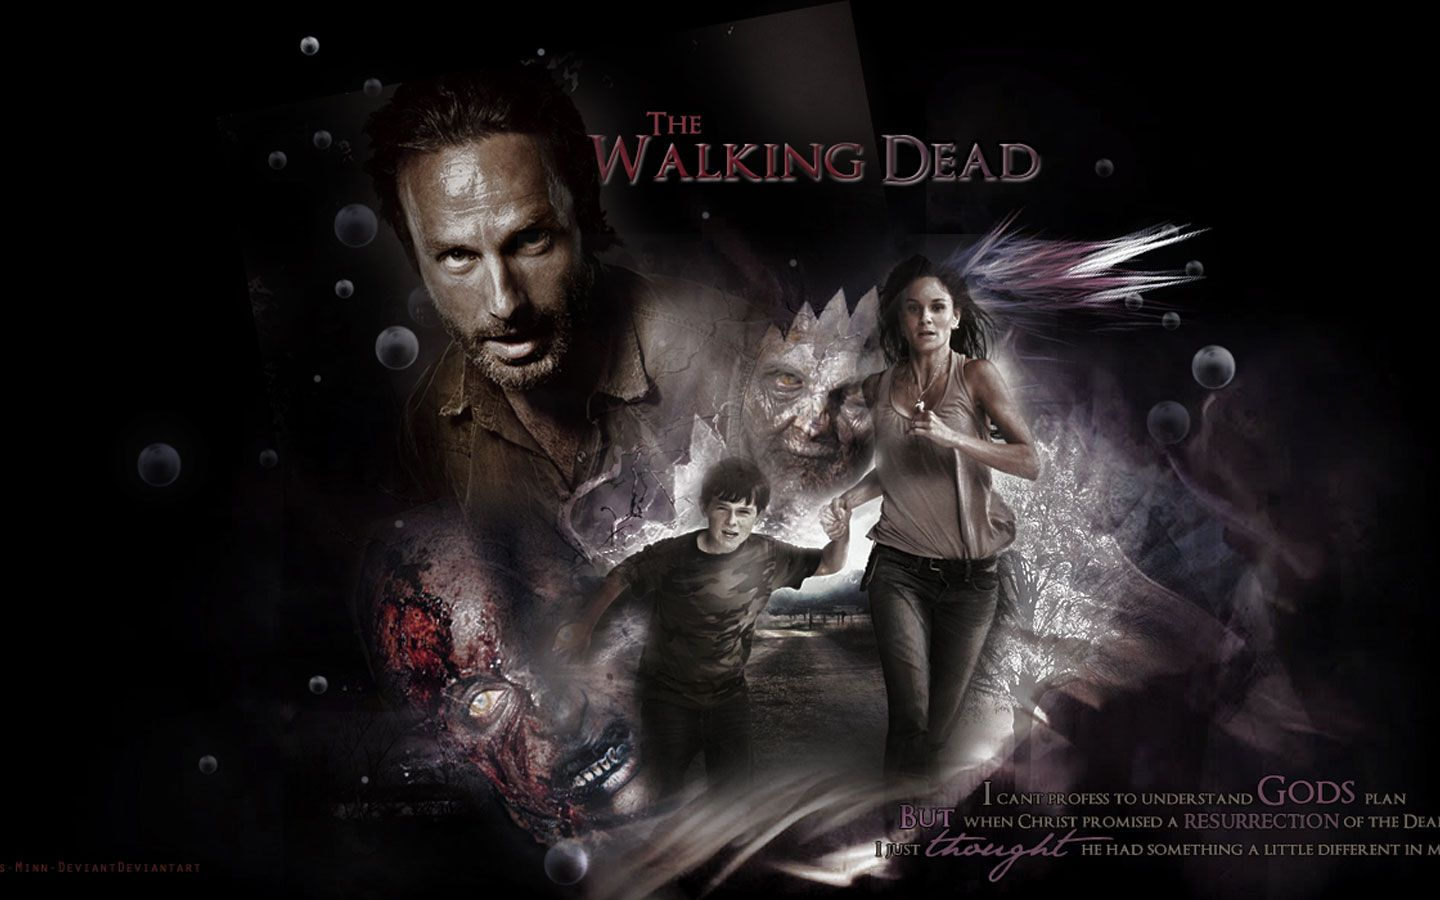 the walking dead | The Walking Dead Wallpaper - Download for free this widescreen ...